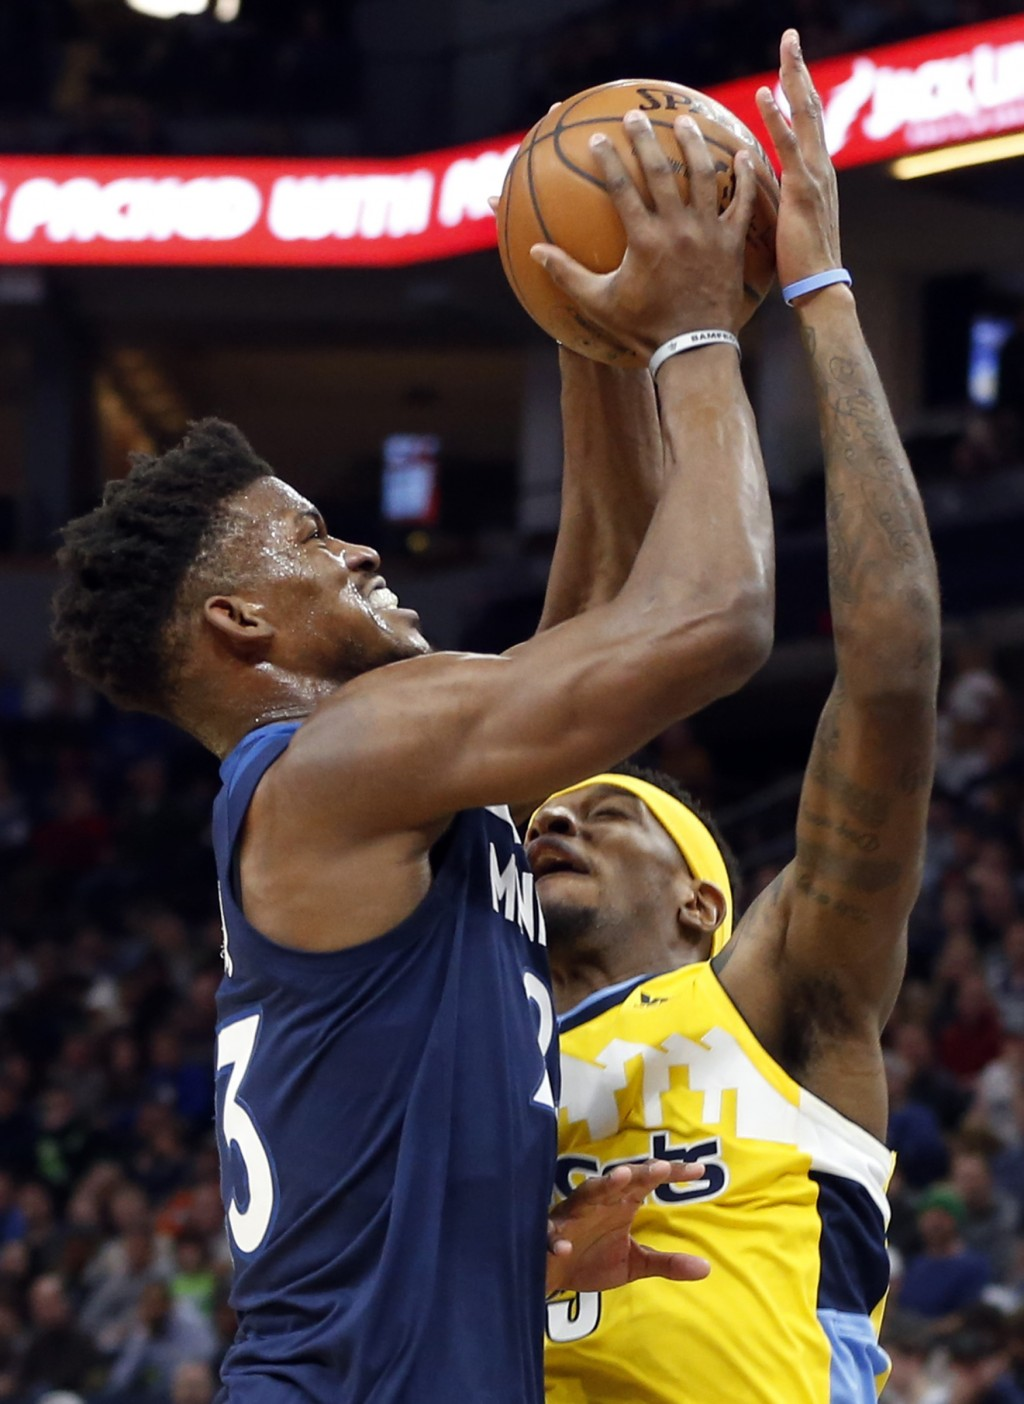 Minnesota Timberwolves' Jimmy Butler, left, attempts a shot as Denver Nuggets' Torrey Craig reaches up to block the ball in the first half of an NBA b...